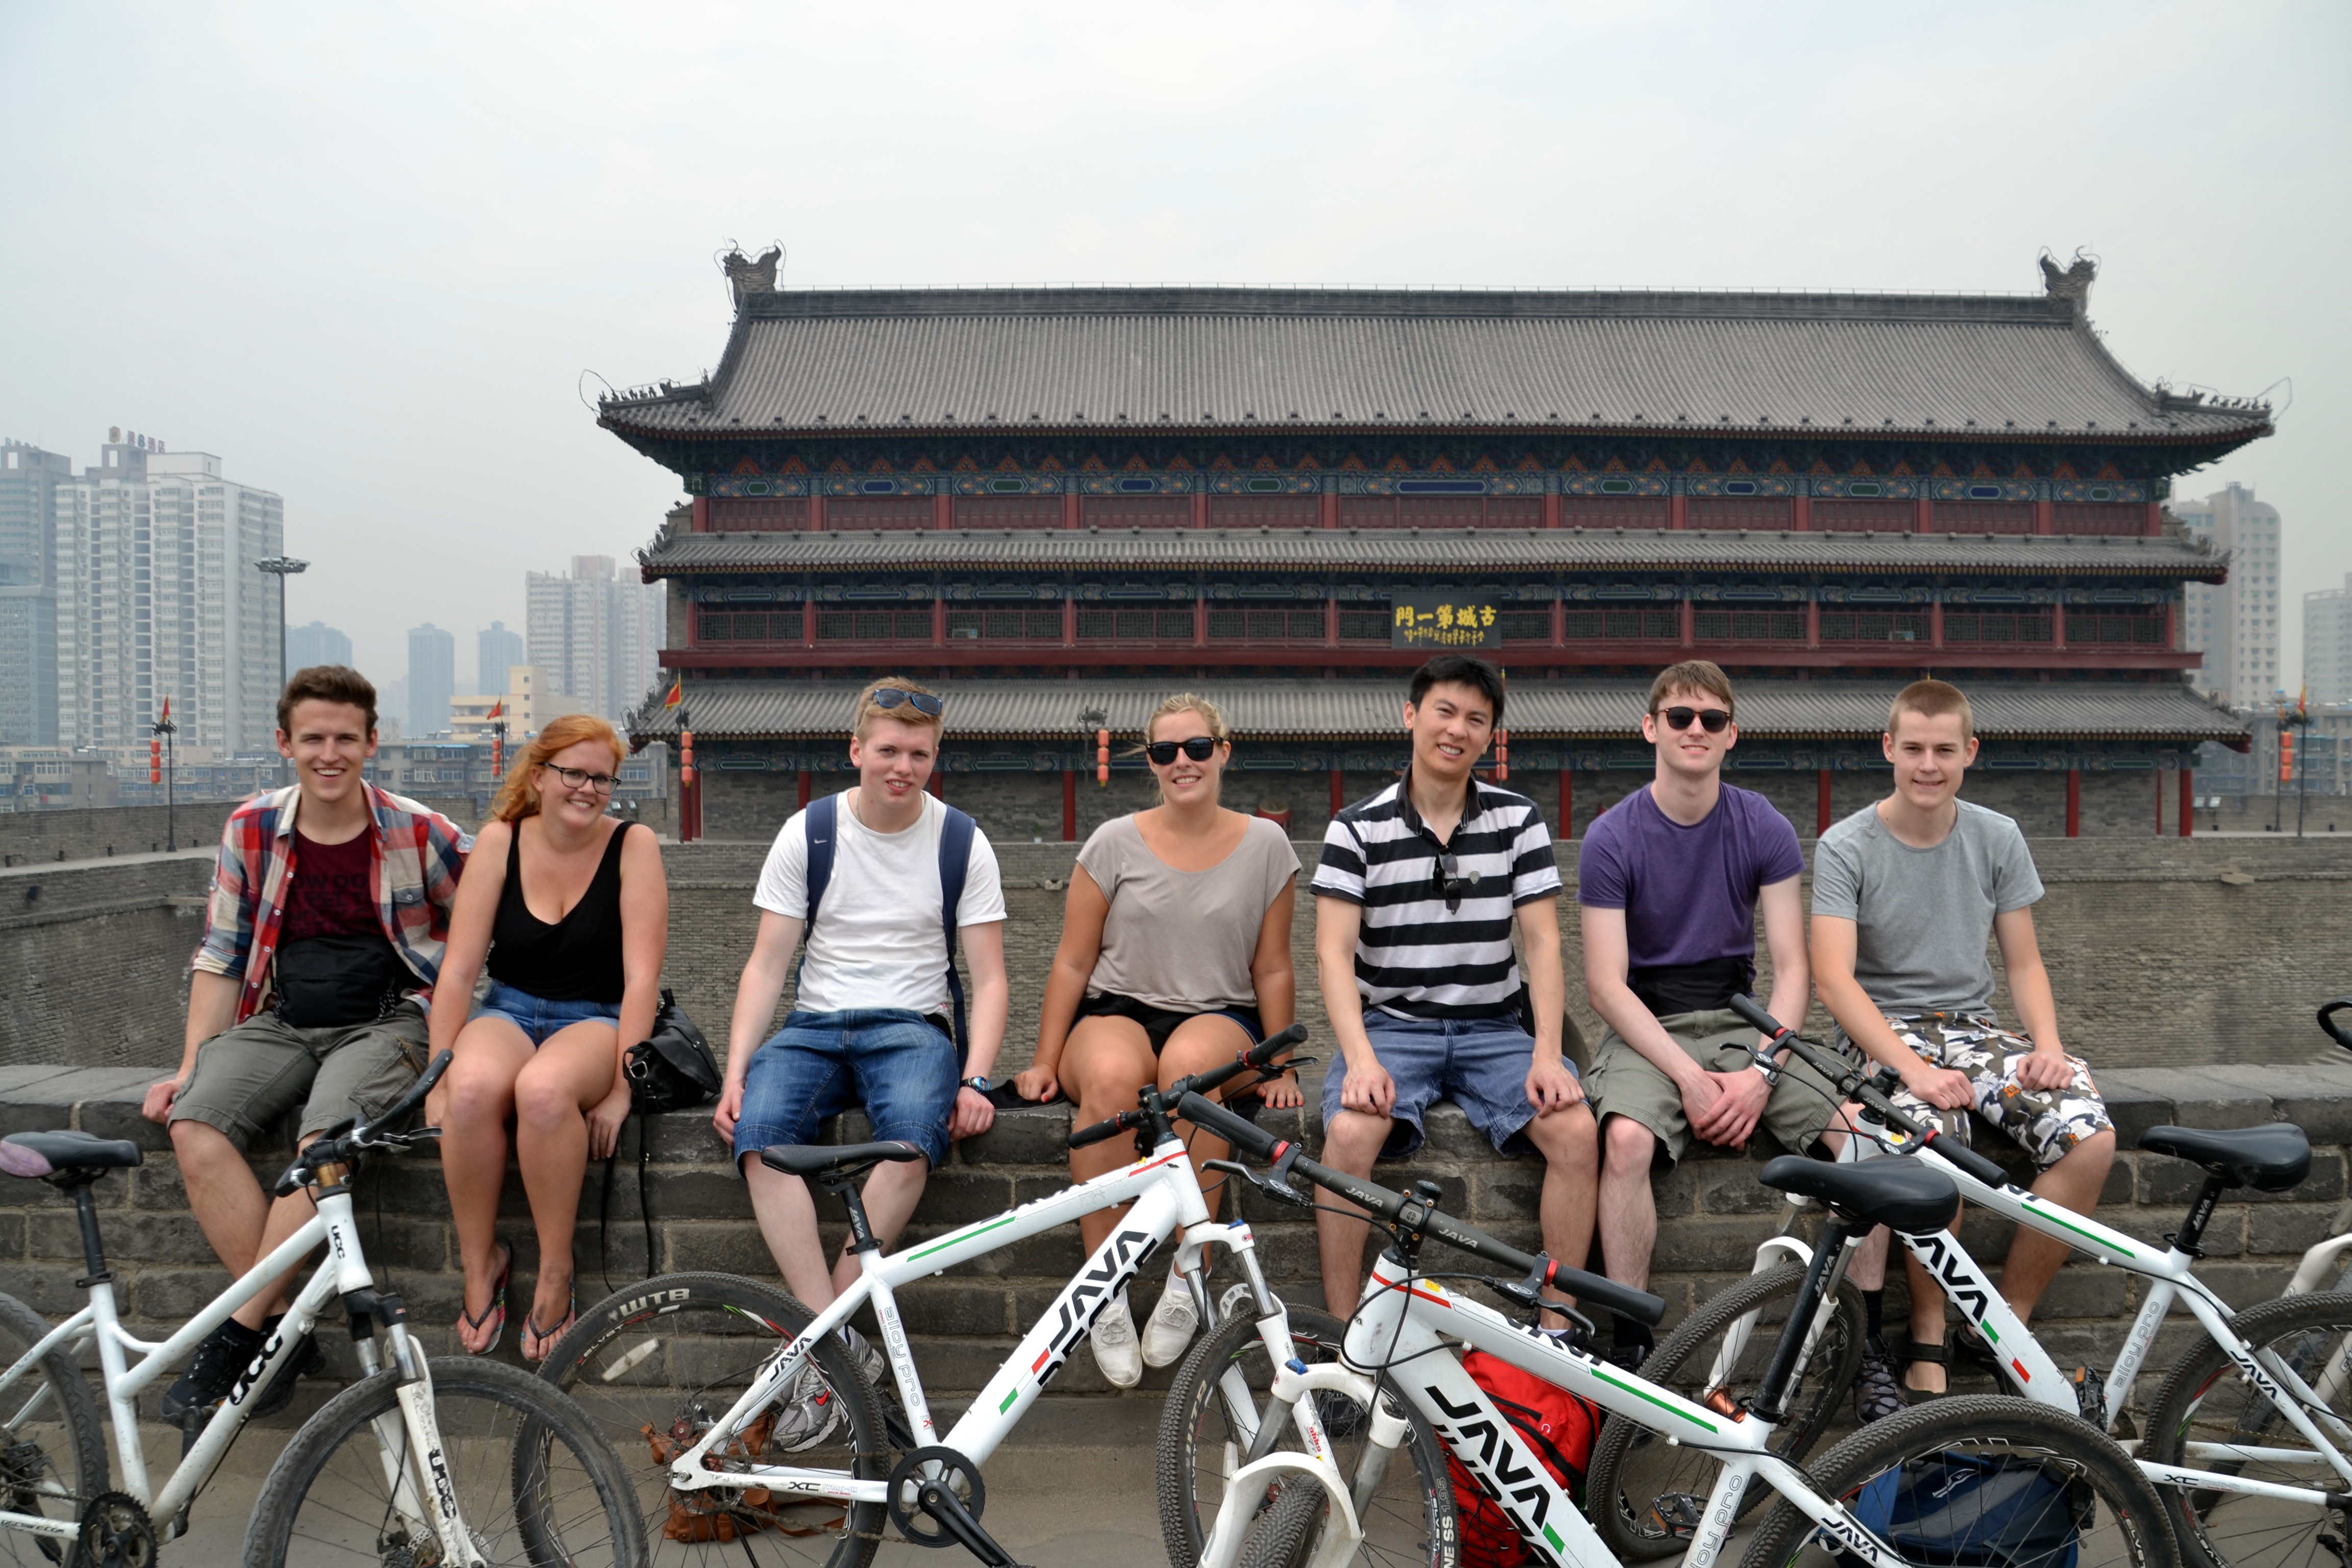 Bicycle ride in Xi'an